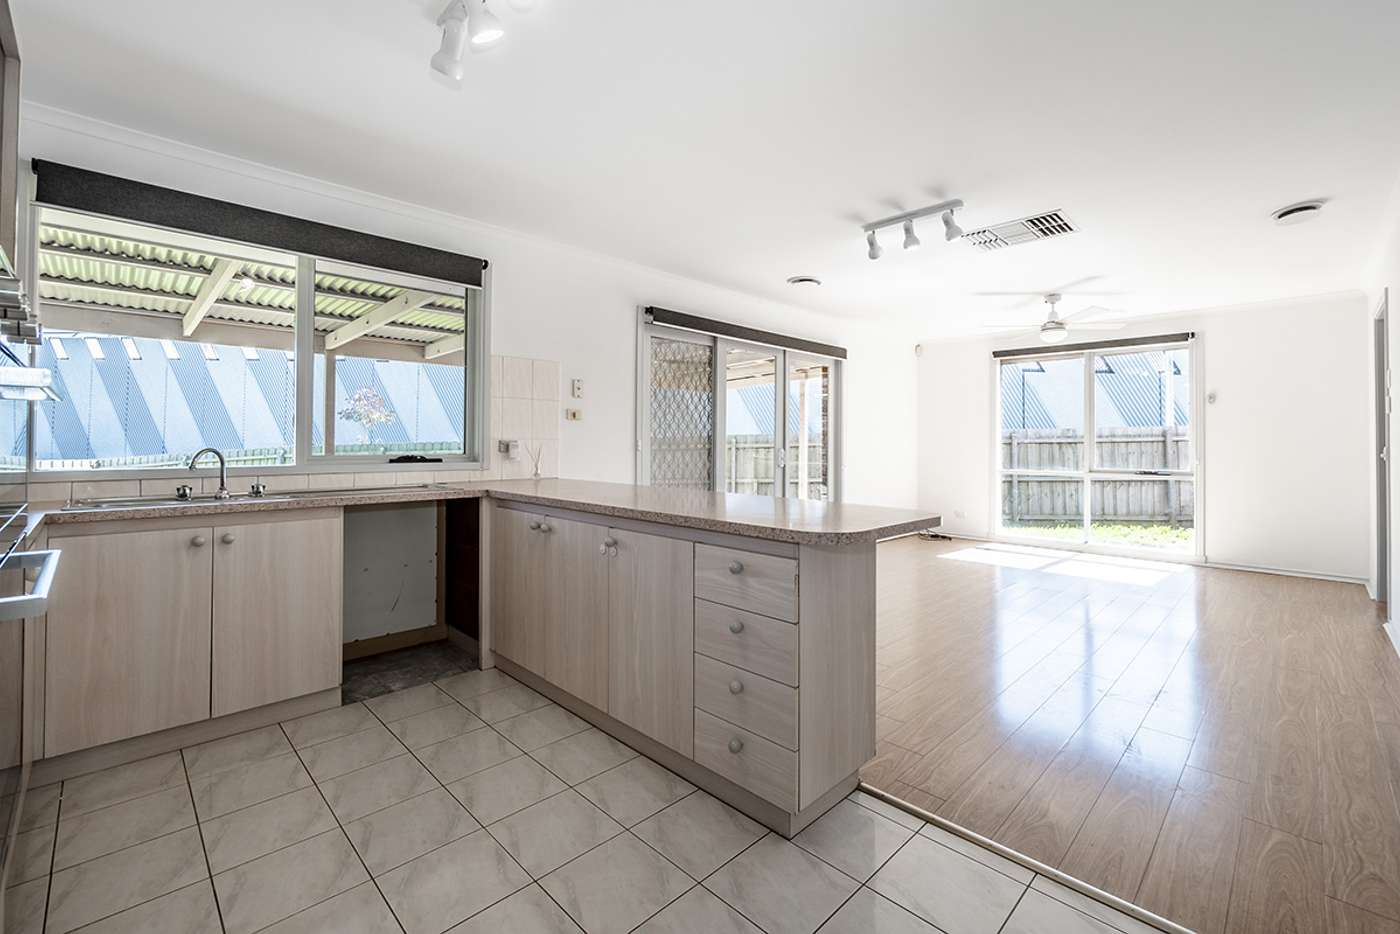 Fifth view of Homely house listing, 16 Tamworth Court, Cranbourne VIC 3977